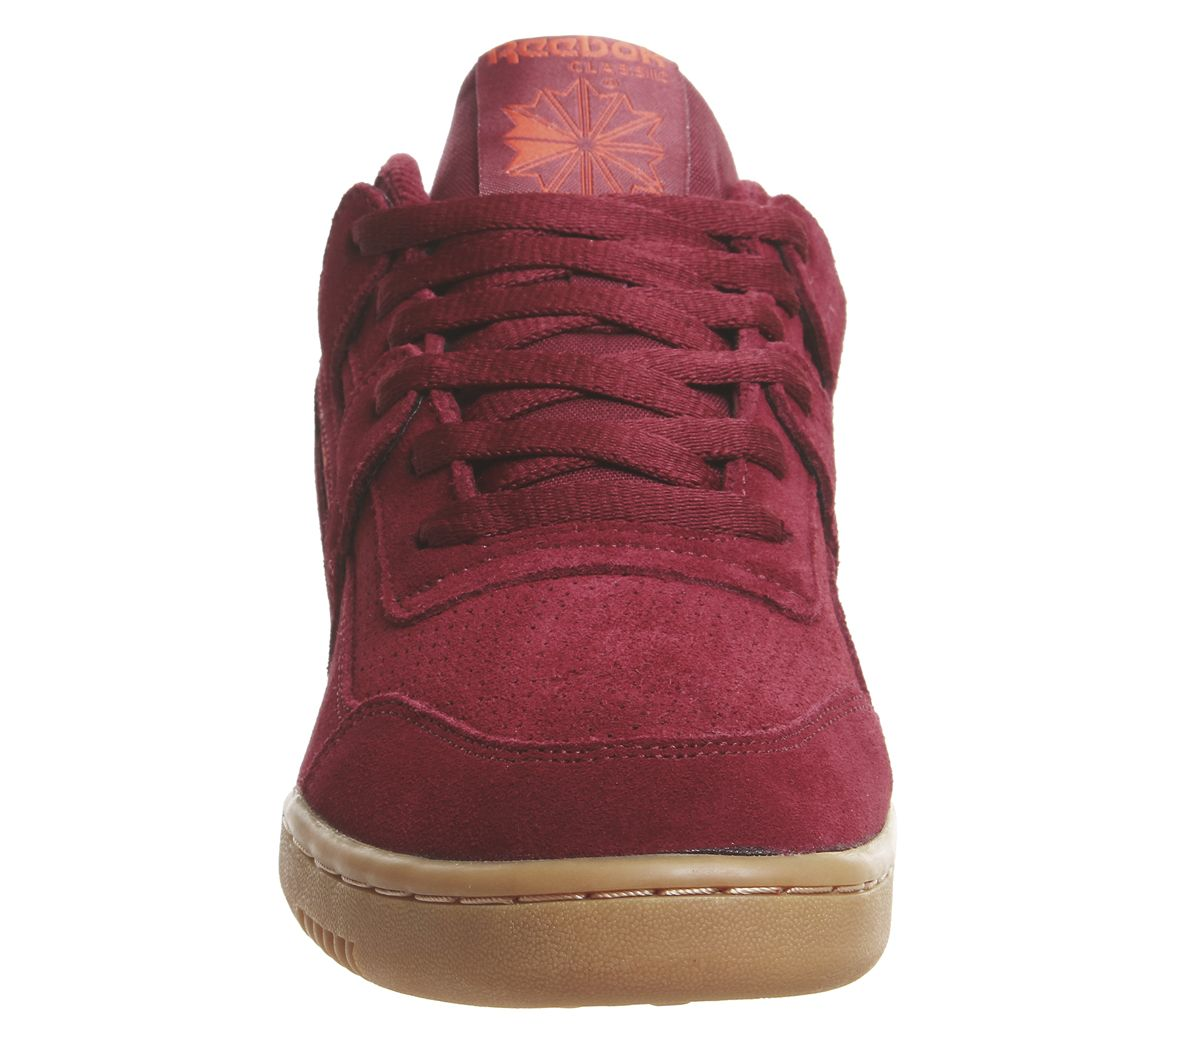 310a6712012 Reebok Workout Plus Trainers Collegiate Burgundy White Gum - His ...